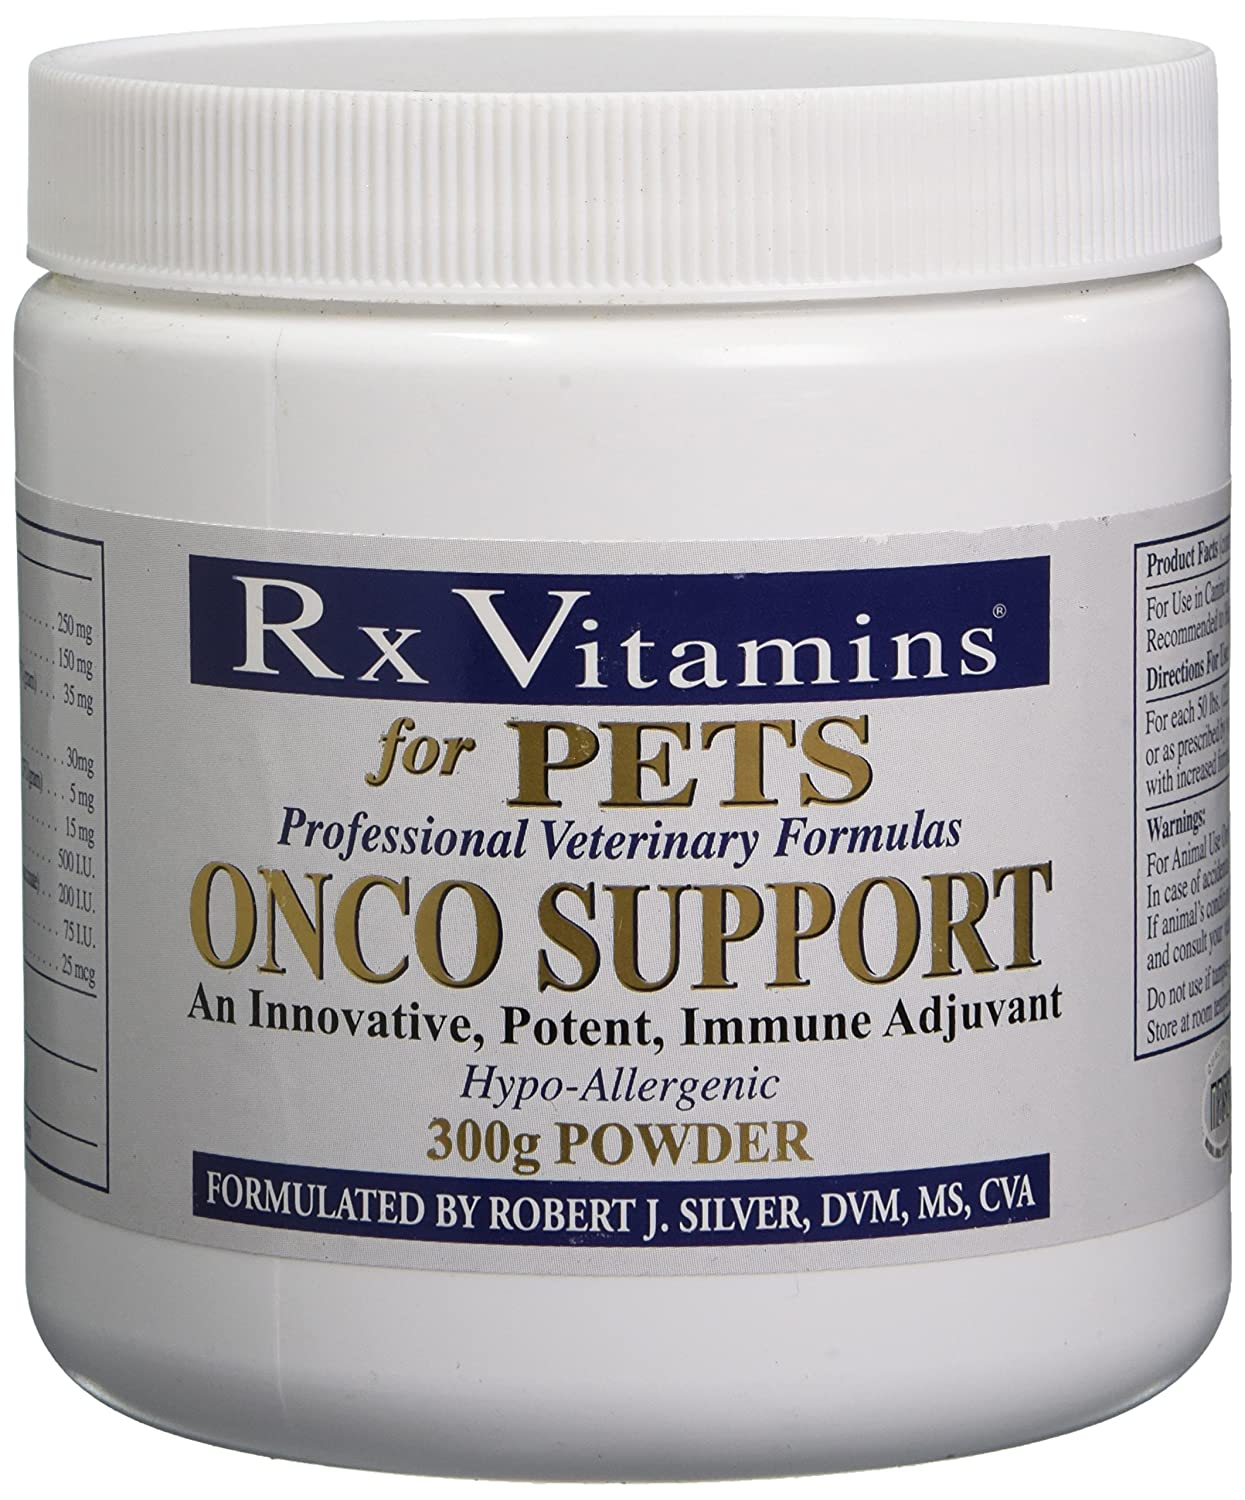 Rx Vitamins 300g Onco Support Powder for Pets